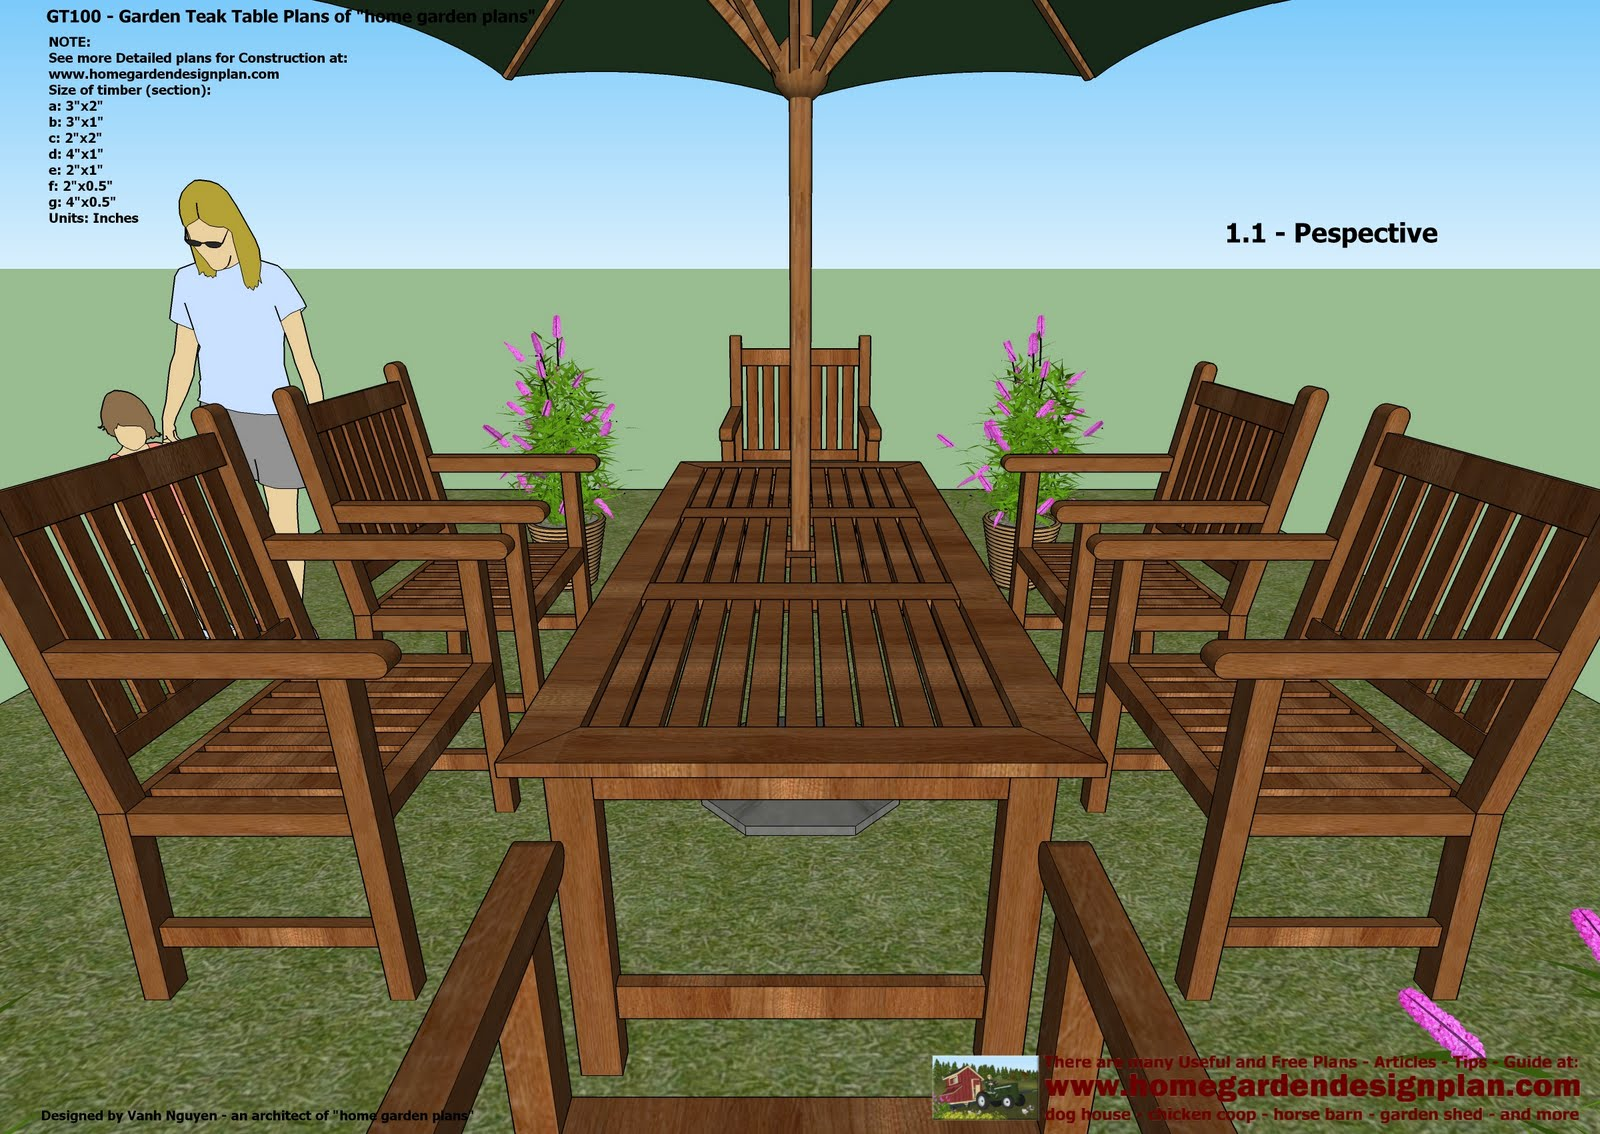 Chair Design Garden Coors Light With Cooler Outdoor Wooden Furniture Plans Quick Woodworking Projects